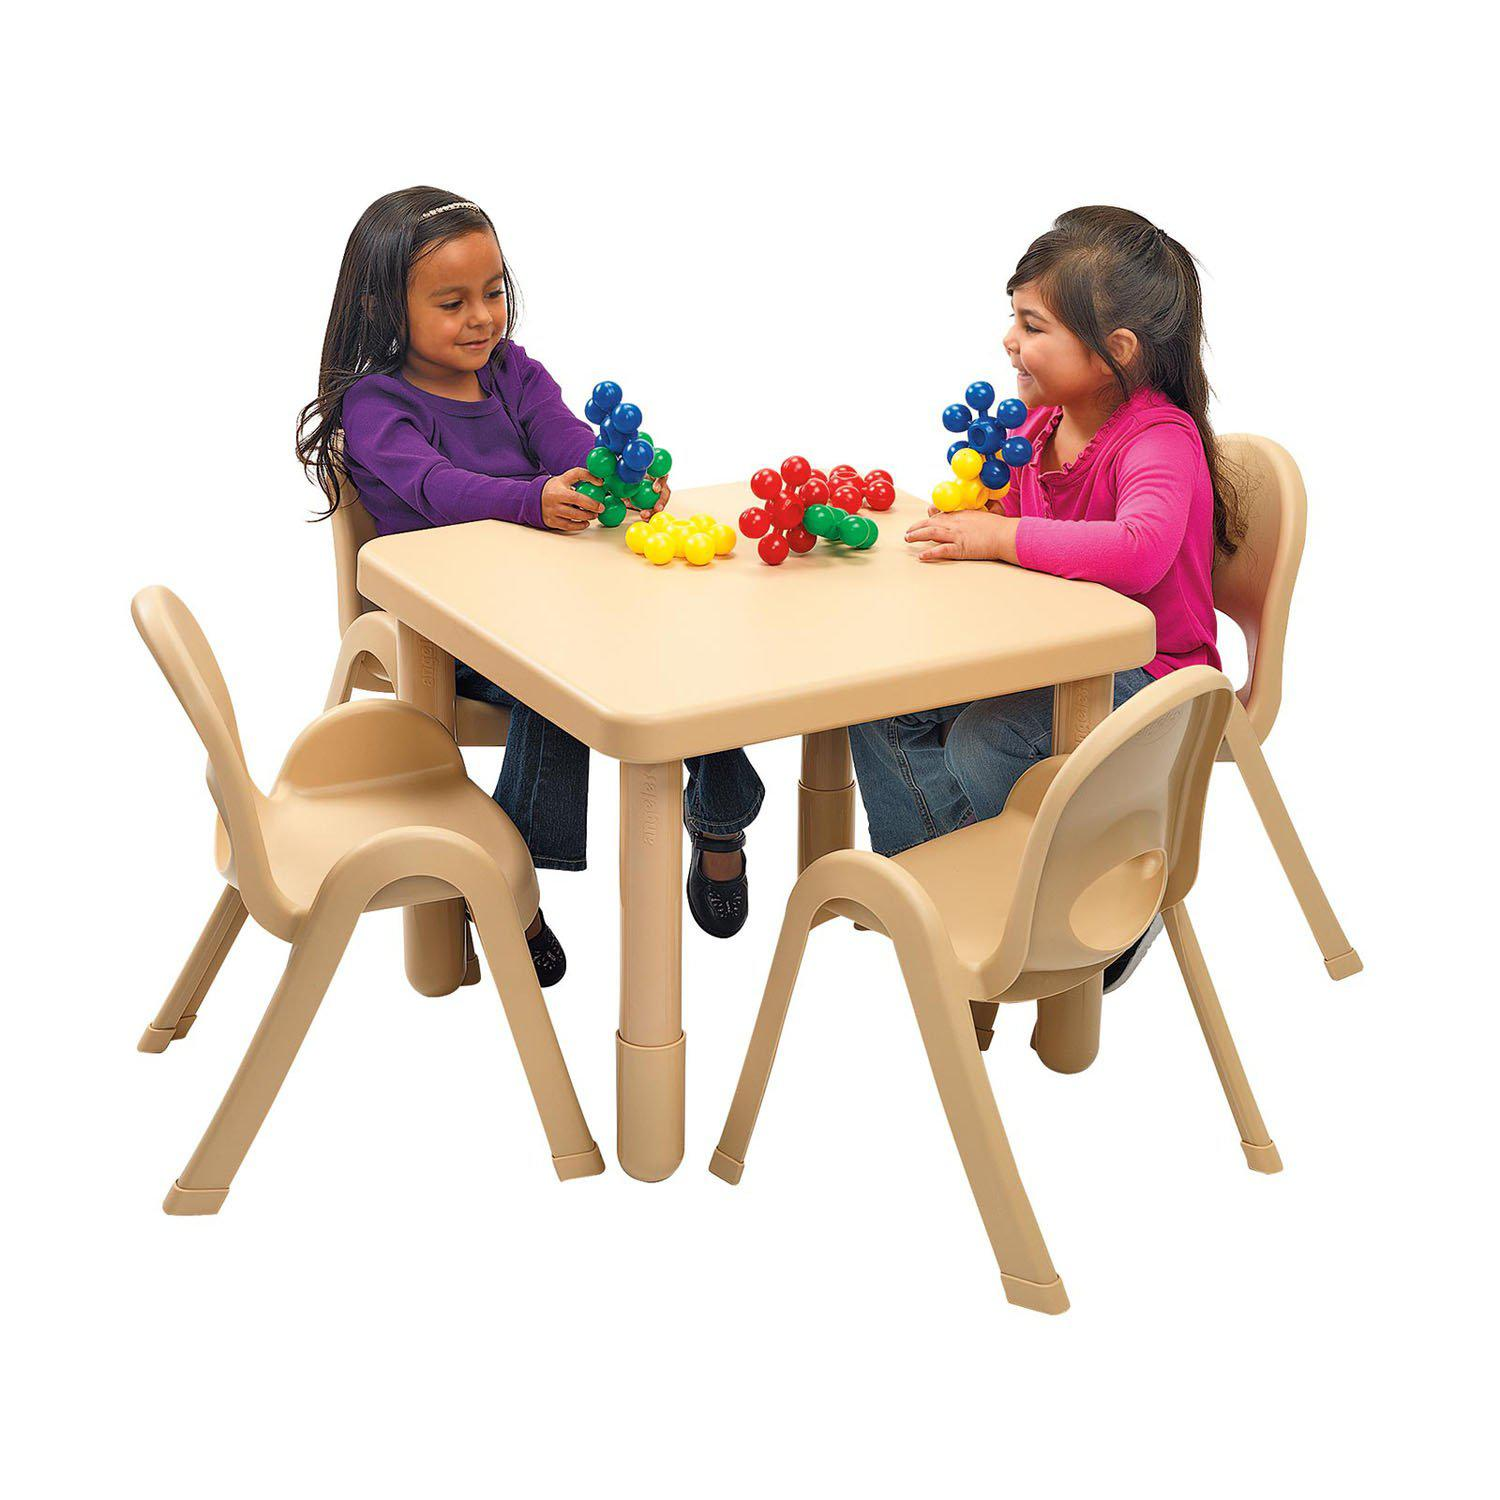 "Toddler MyValue™ Table and Chair Set - 28"" Square x 20""-High Natural Tan Table with 4 Matching 11""-High Chairs"